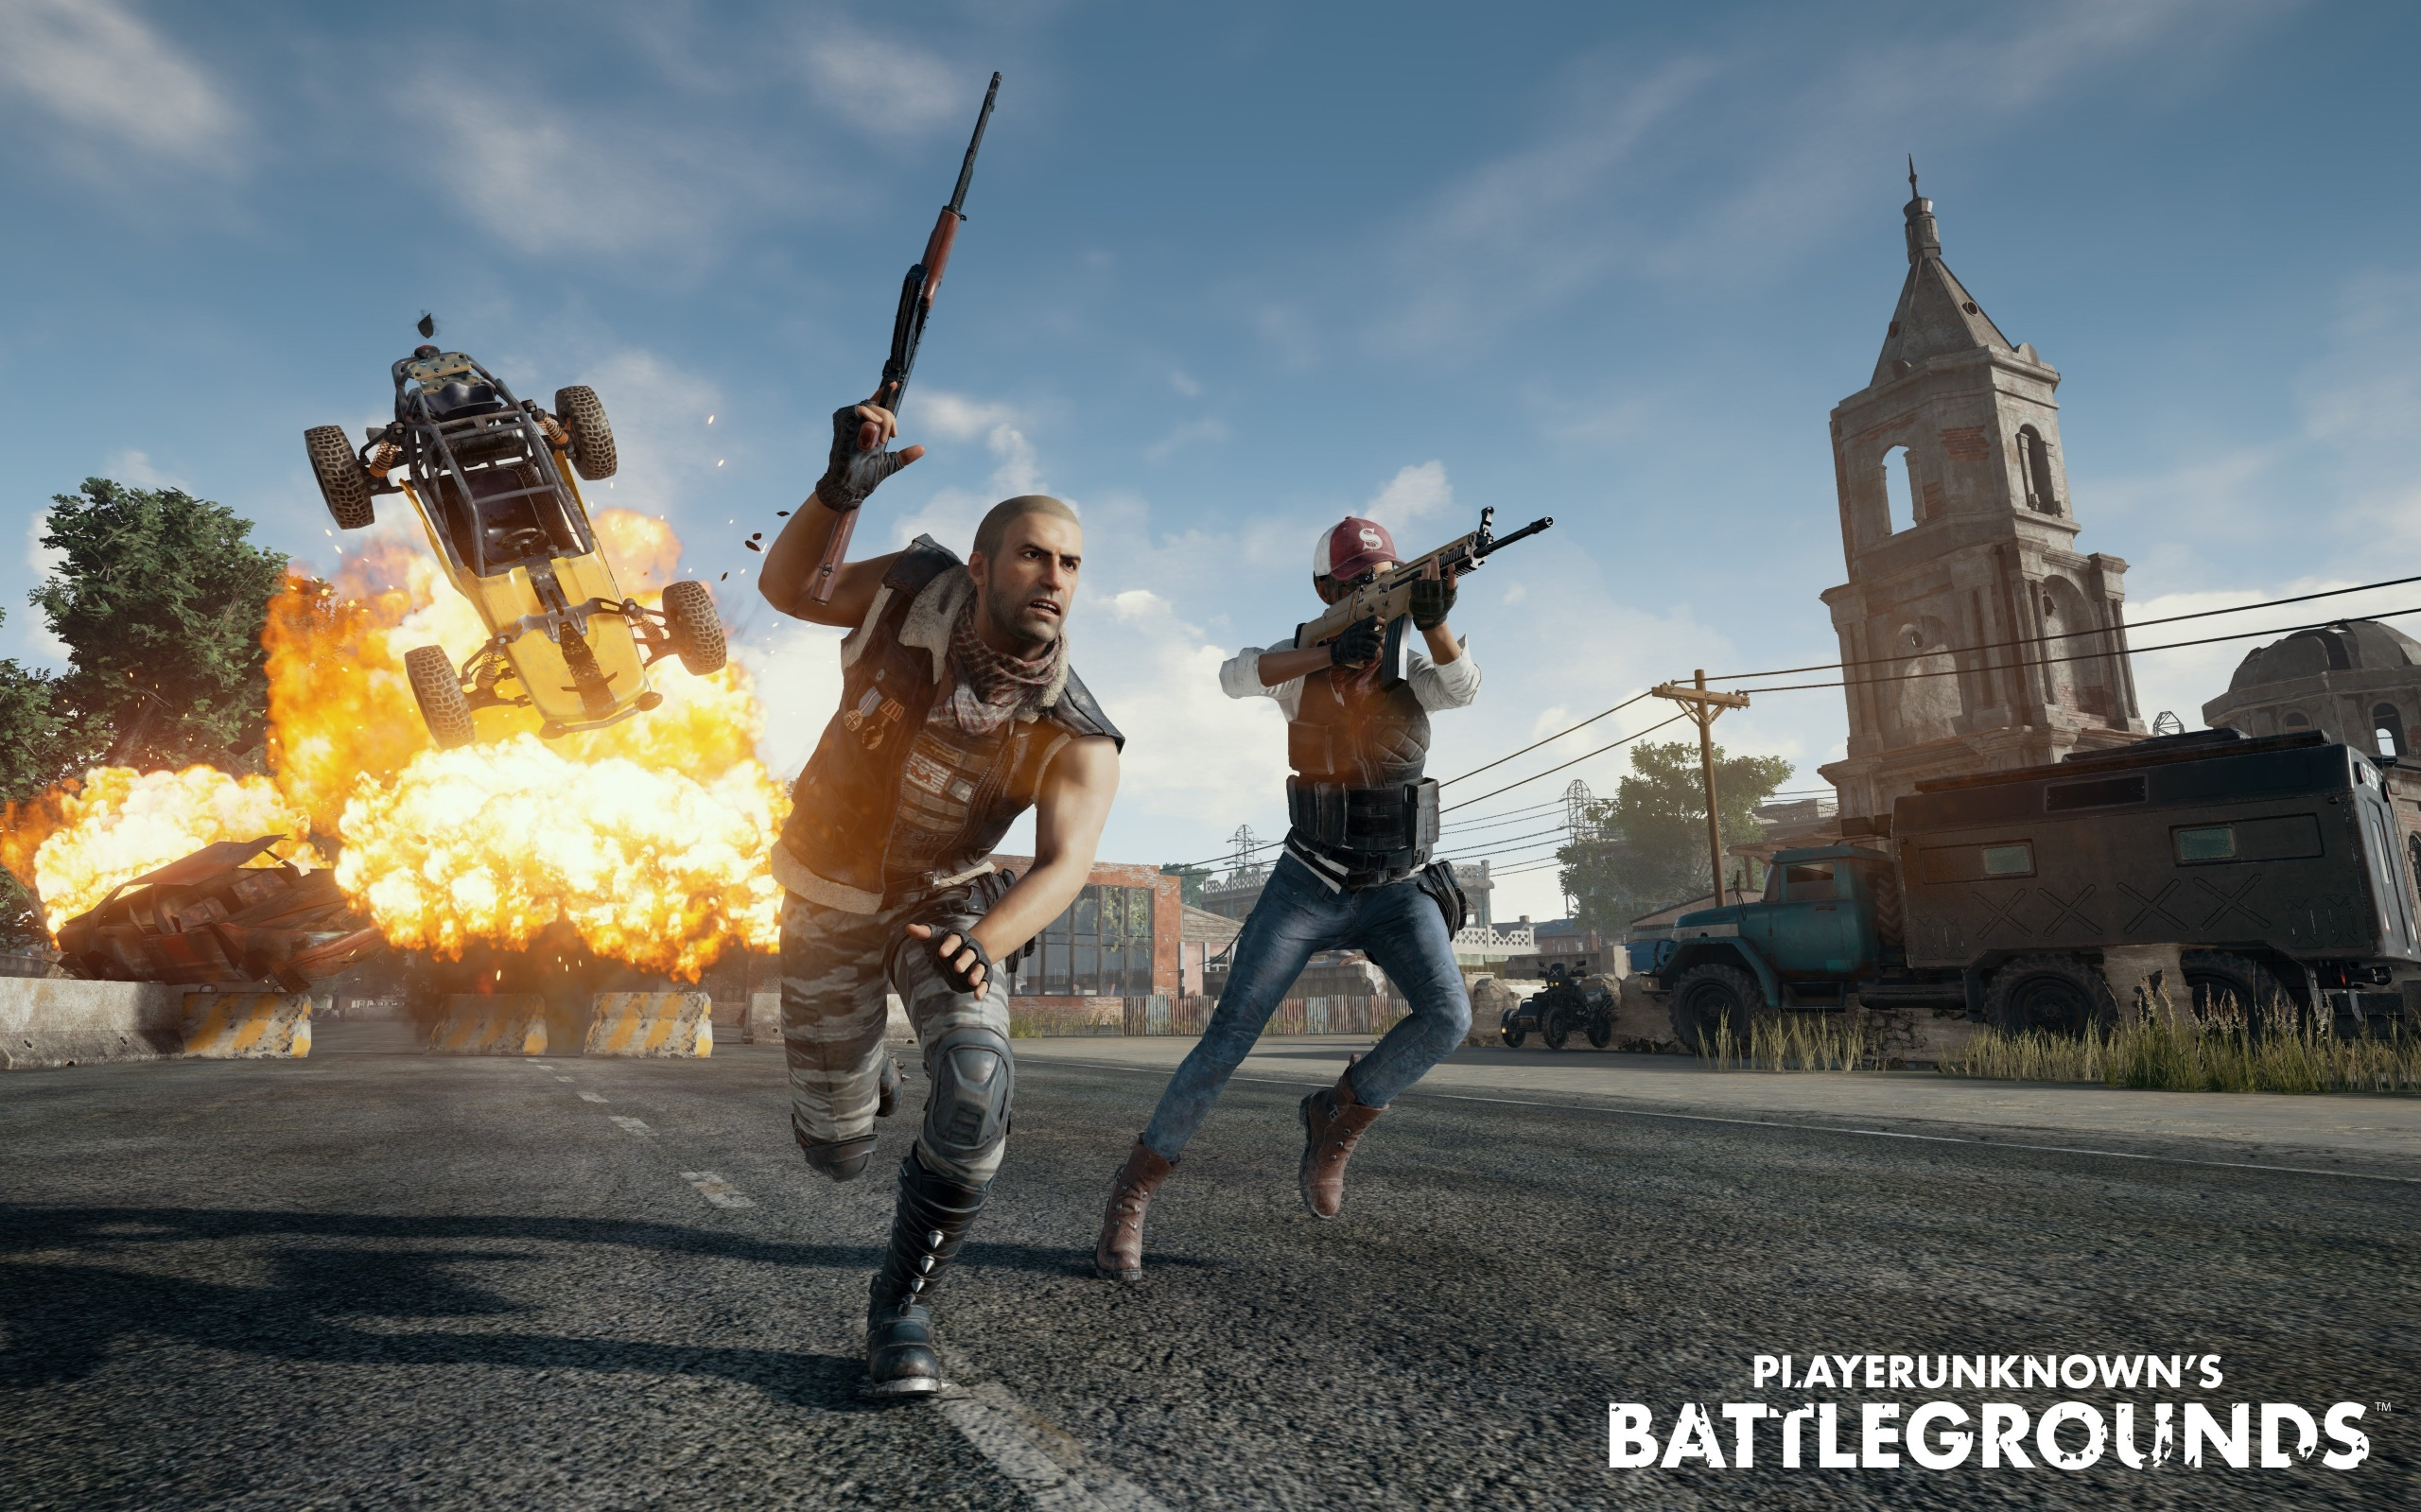 2560x1080 2018 Playerunknowns Battlegrounds 2560x1080: Playerunknowns Battlegrounds, HD 8K Wallpaper